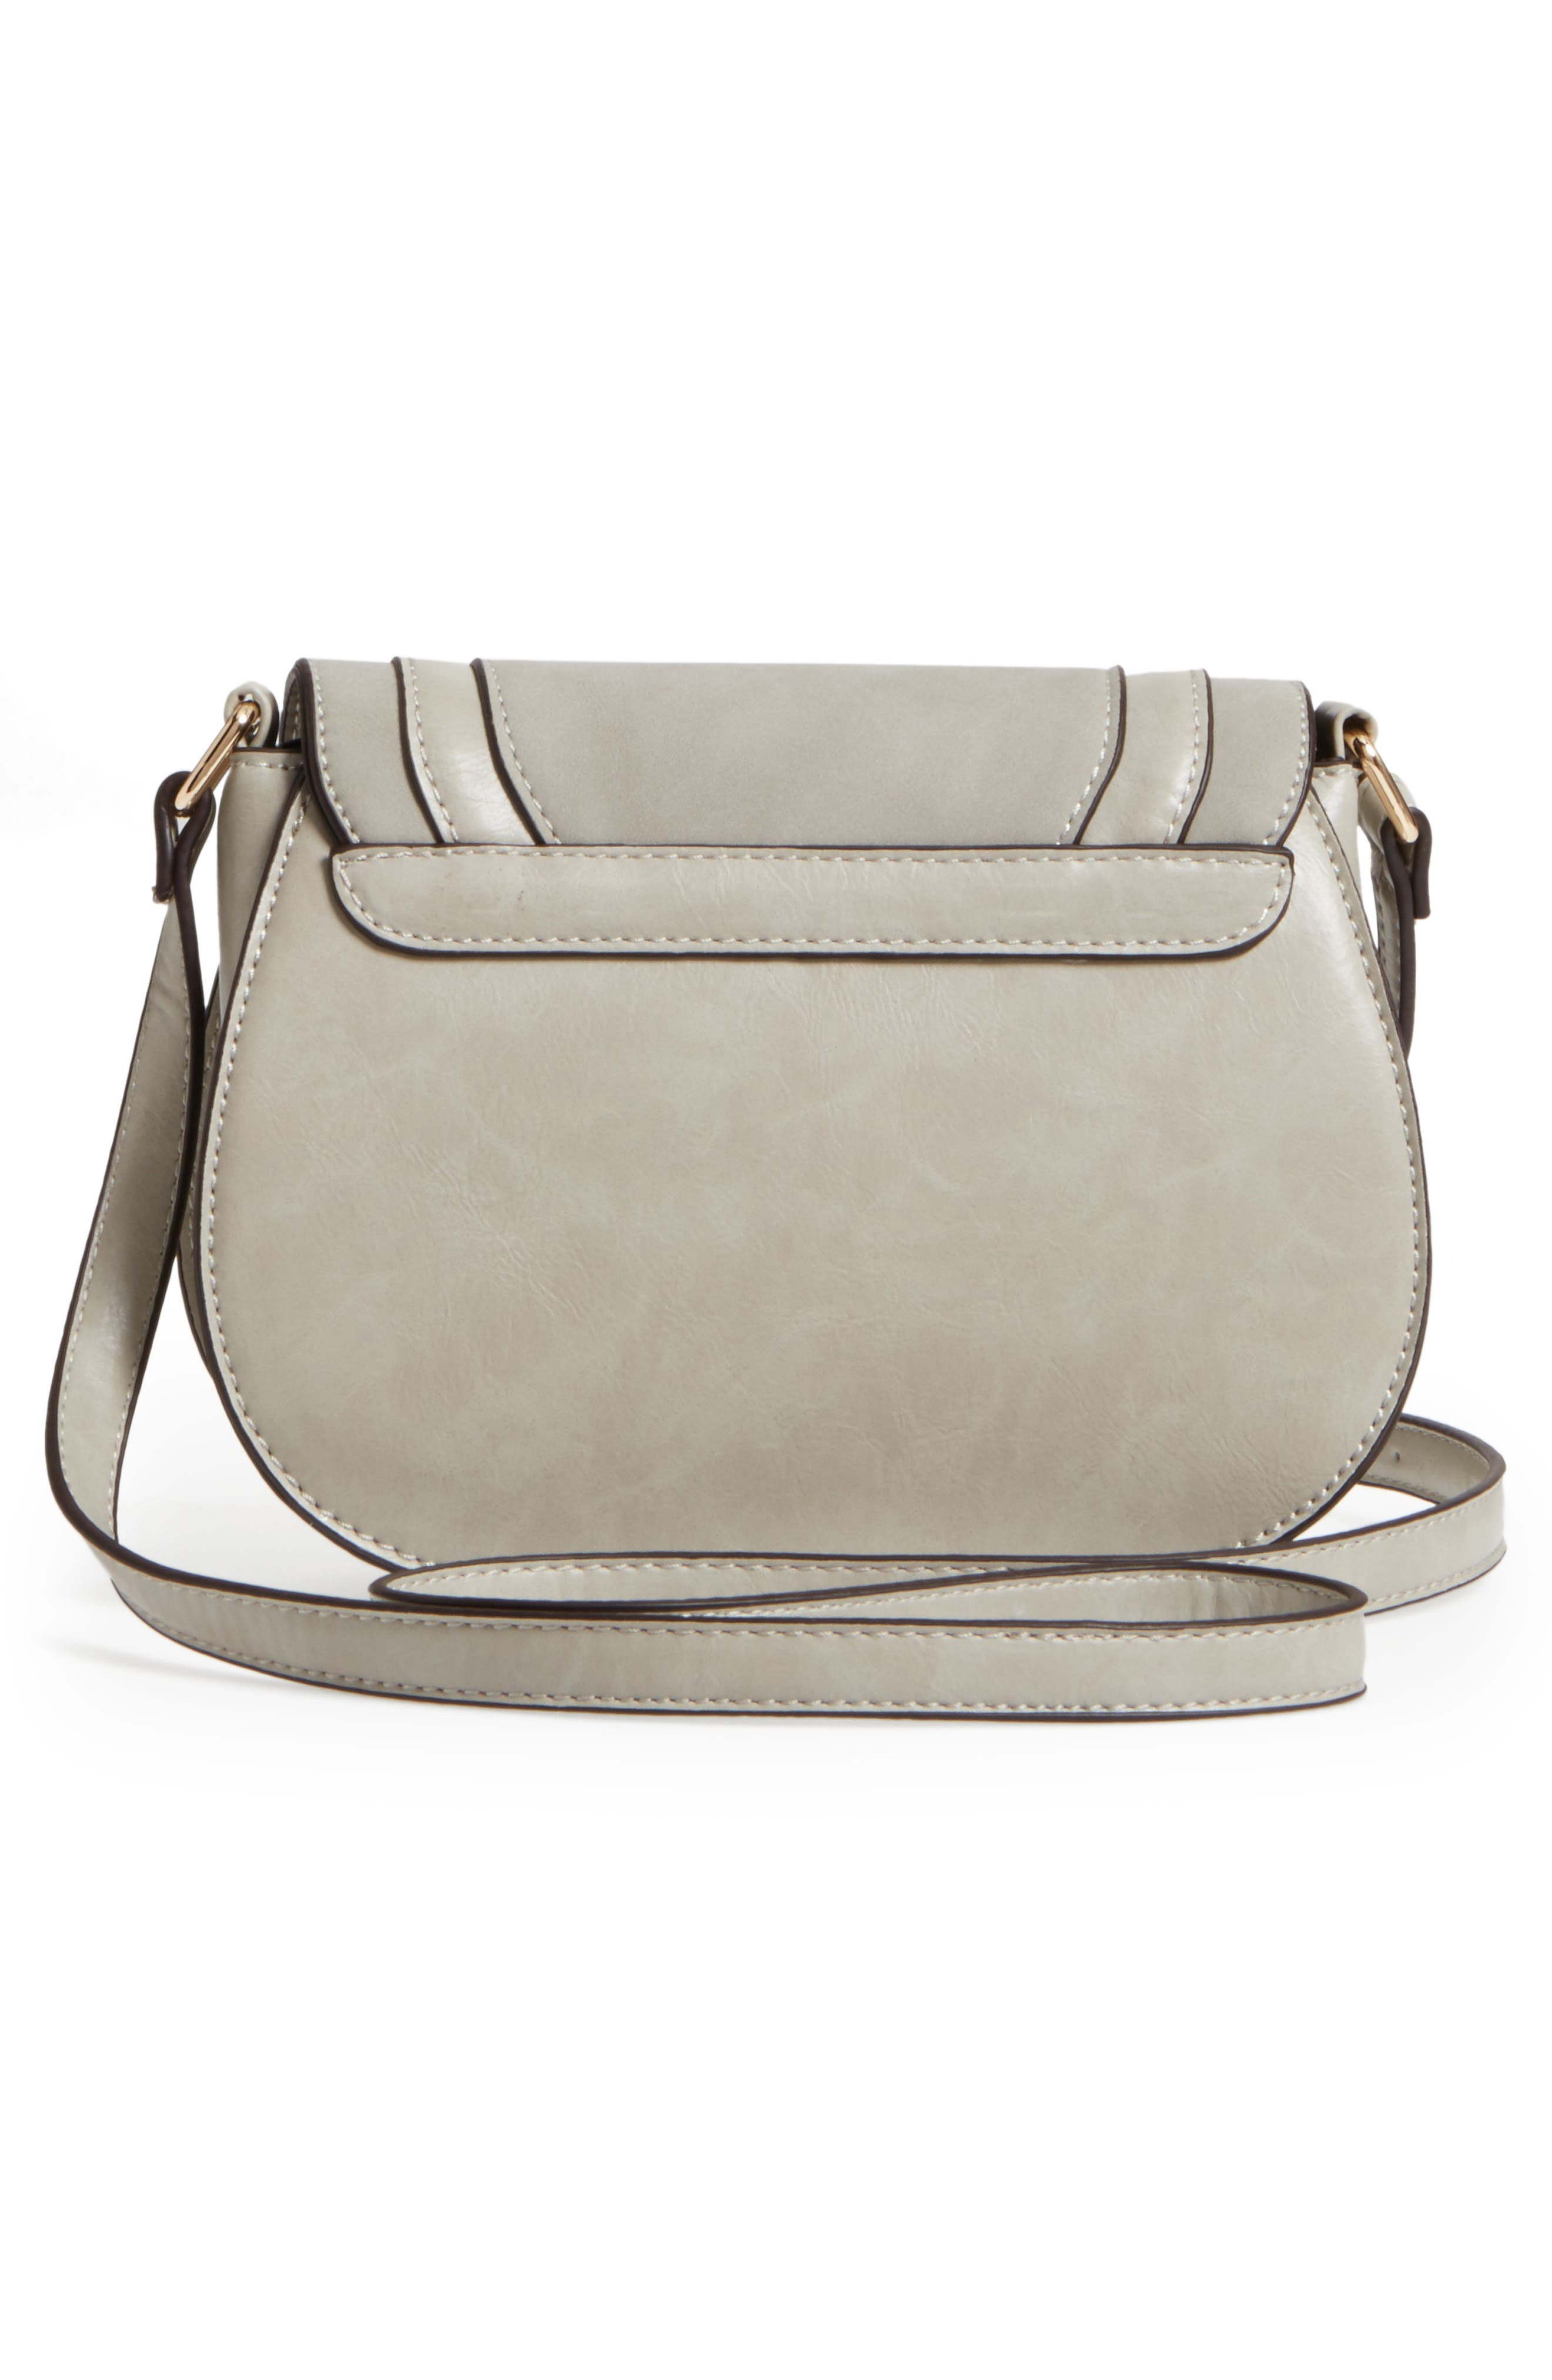 Bryson Faux Leather Crossbody Bag,                             Alternate thumbnail 3, color,                             025